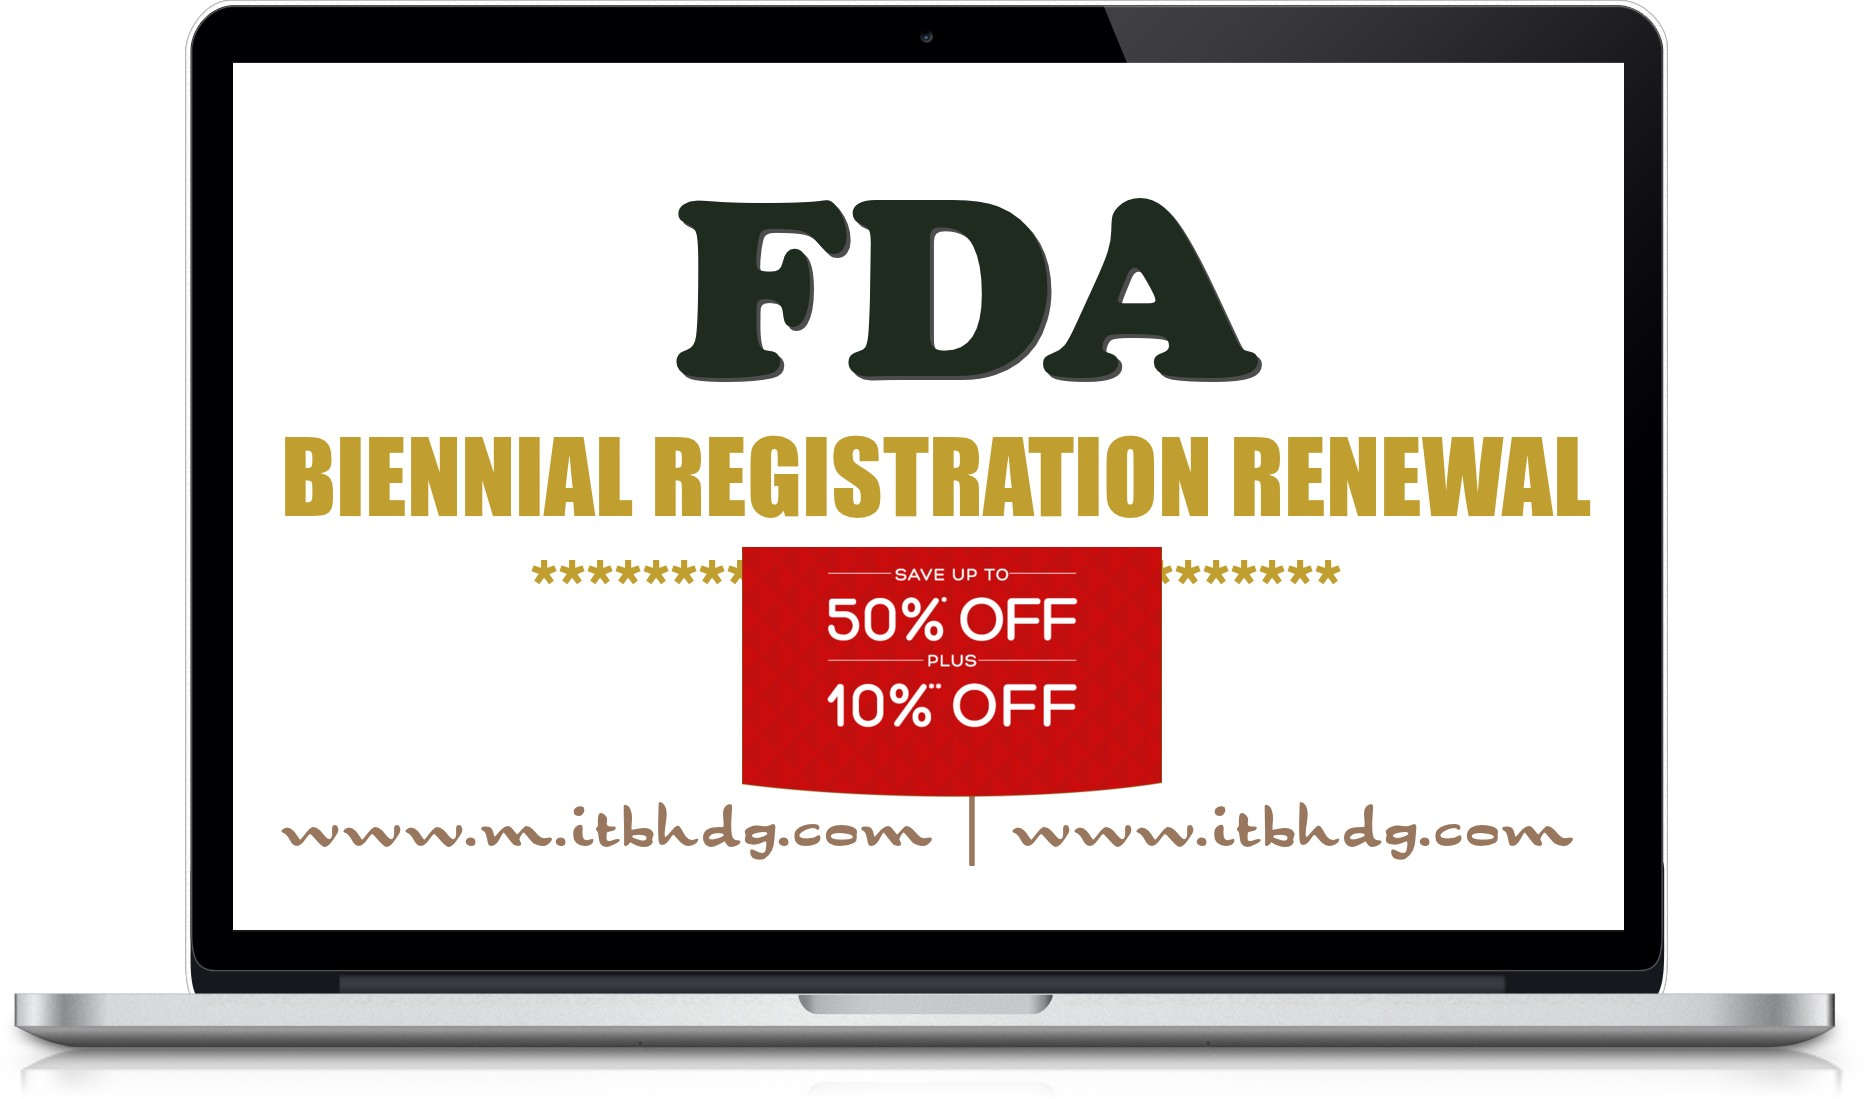 Low Cost FDA Registration | Only 99 USD | Normandie Foods | Save time and money Now @ ITB HOLDINGS LLC | www.m.itbhdg.com | www.itbhdg.com | http://www.itbhdg.com/english/contactform.php